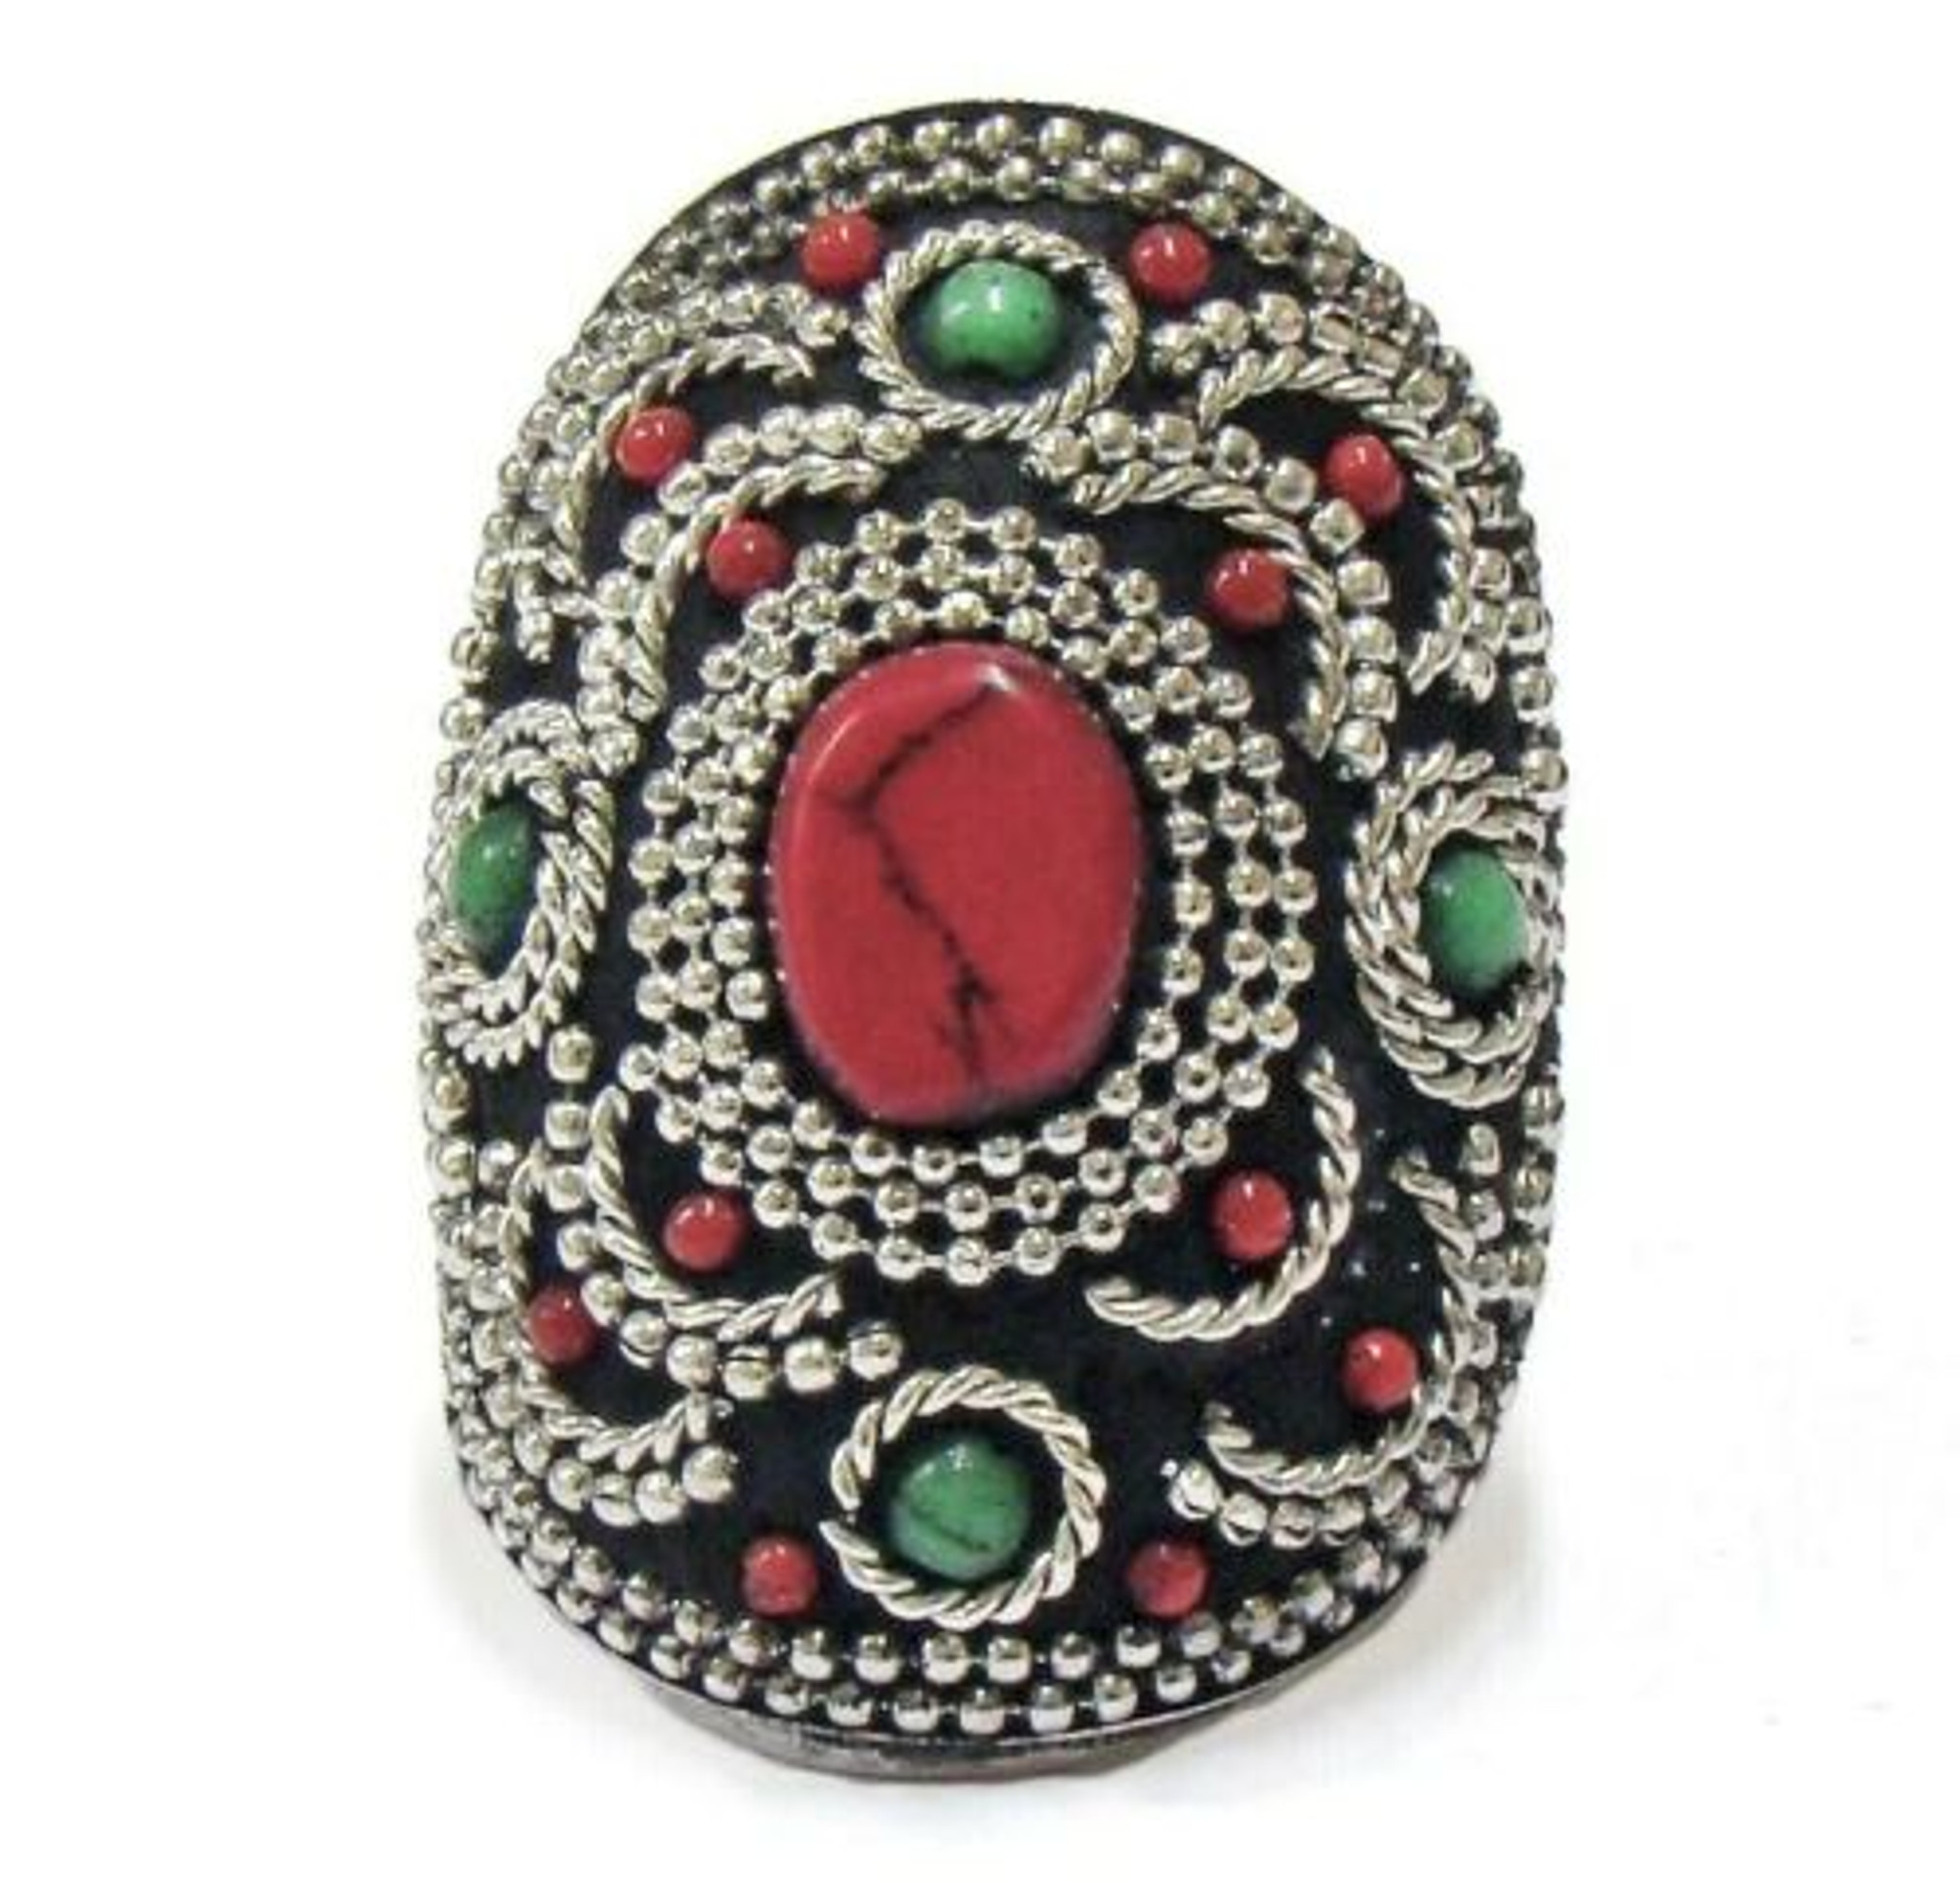 Adelaide Terracotta and Mosaic Ring with Cabochon Accent